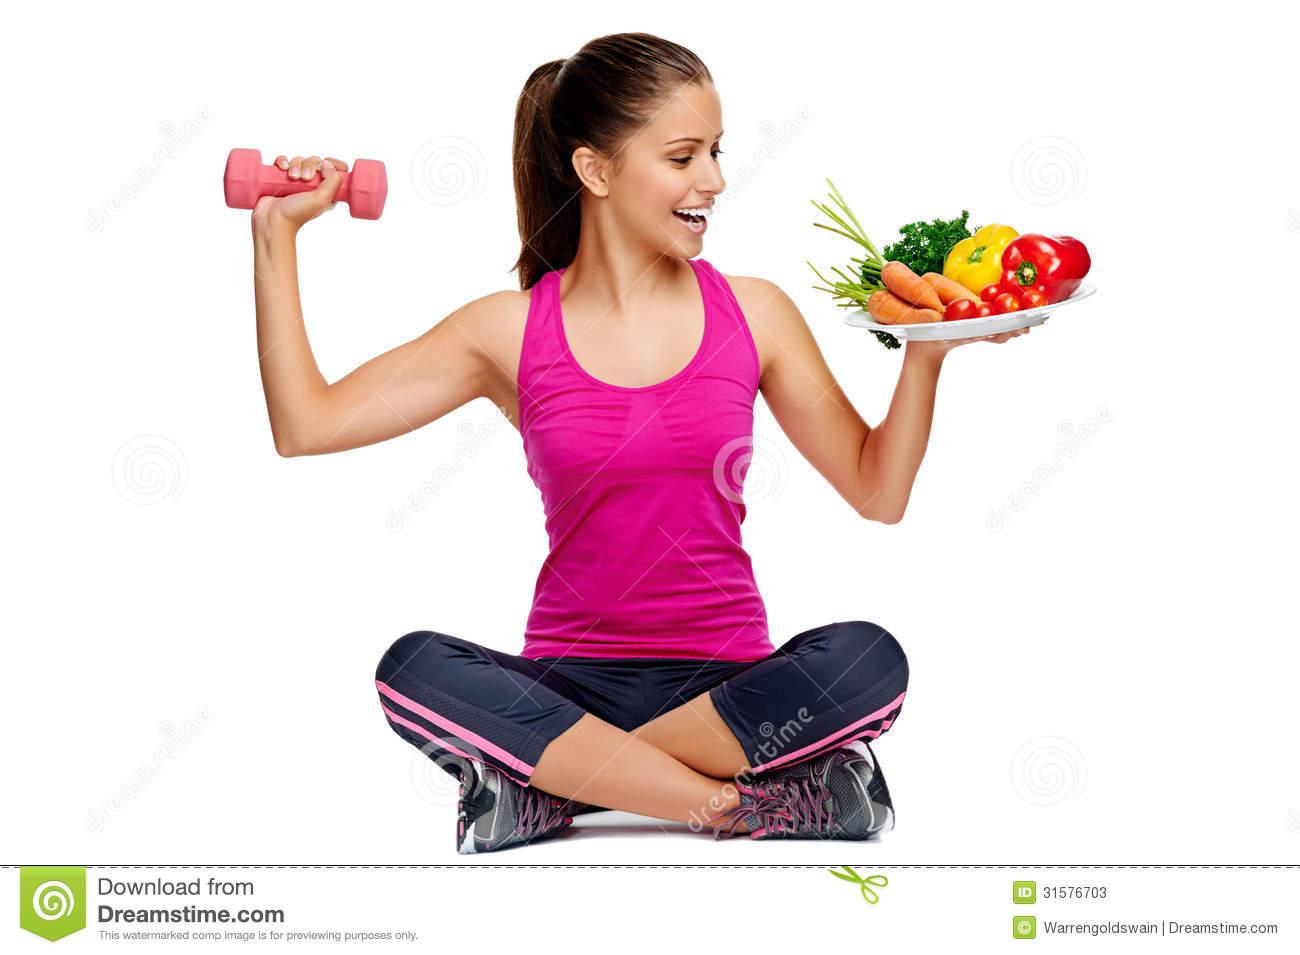 ... eating and exercise for weightloss diet concept mr yes pr no 5 1568 63